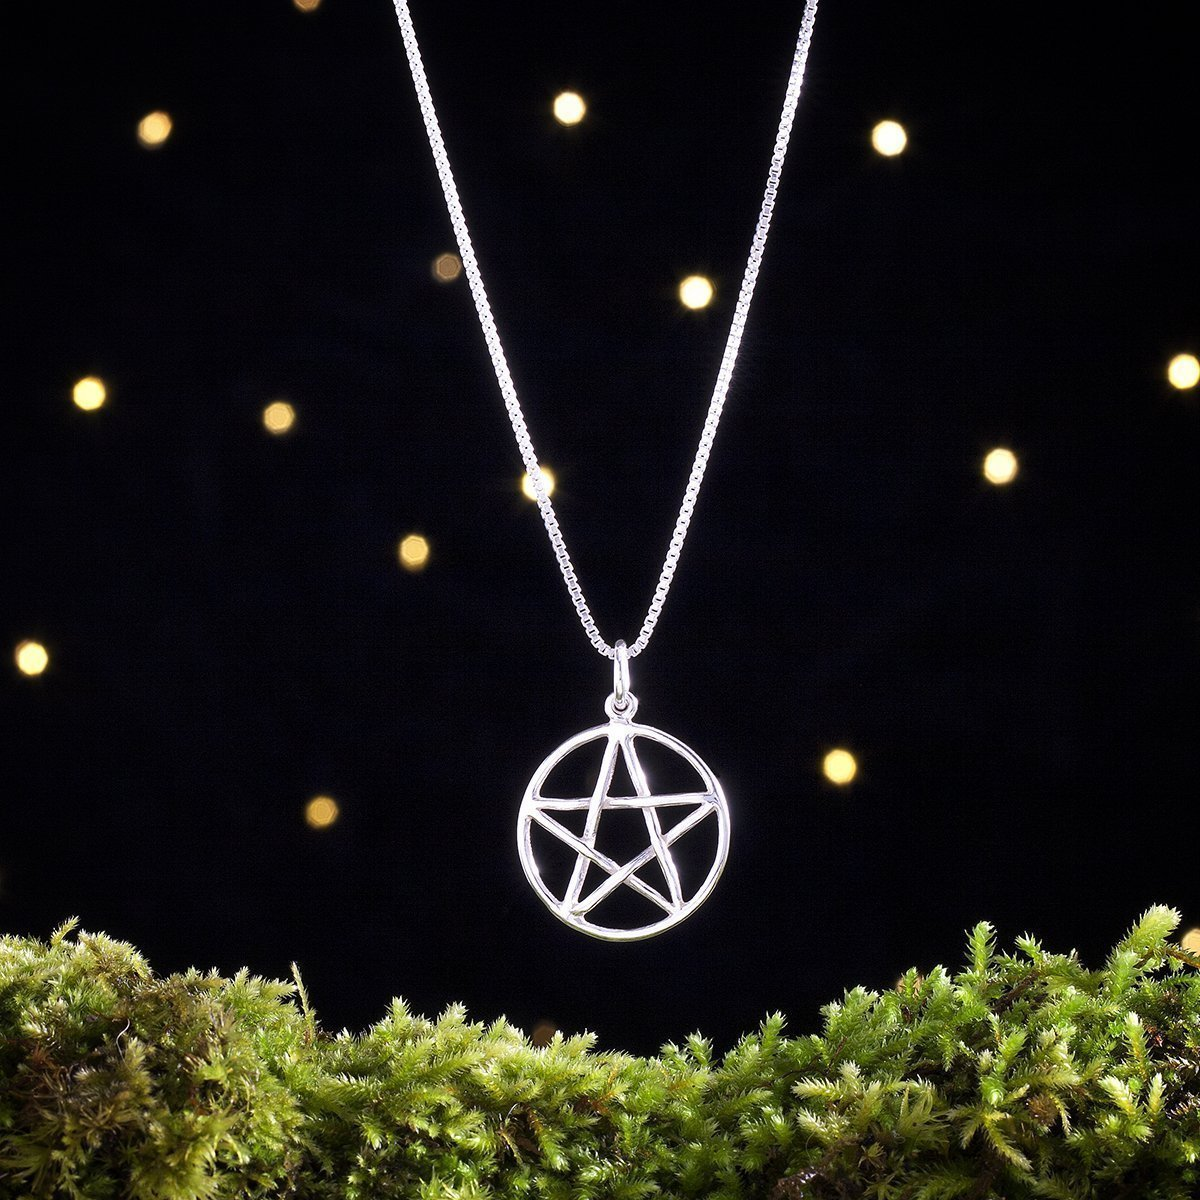 Sterling Silver Pentagram, Pentacle - Double Sided - (Pendant, Necklace, or Earrings)